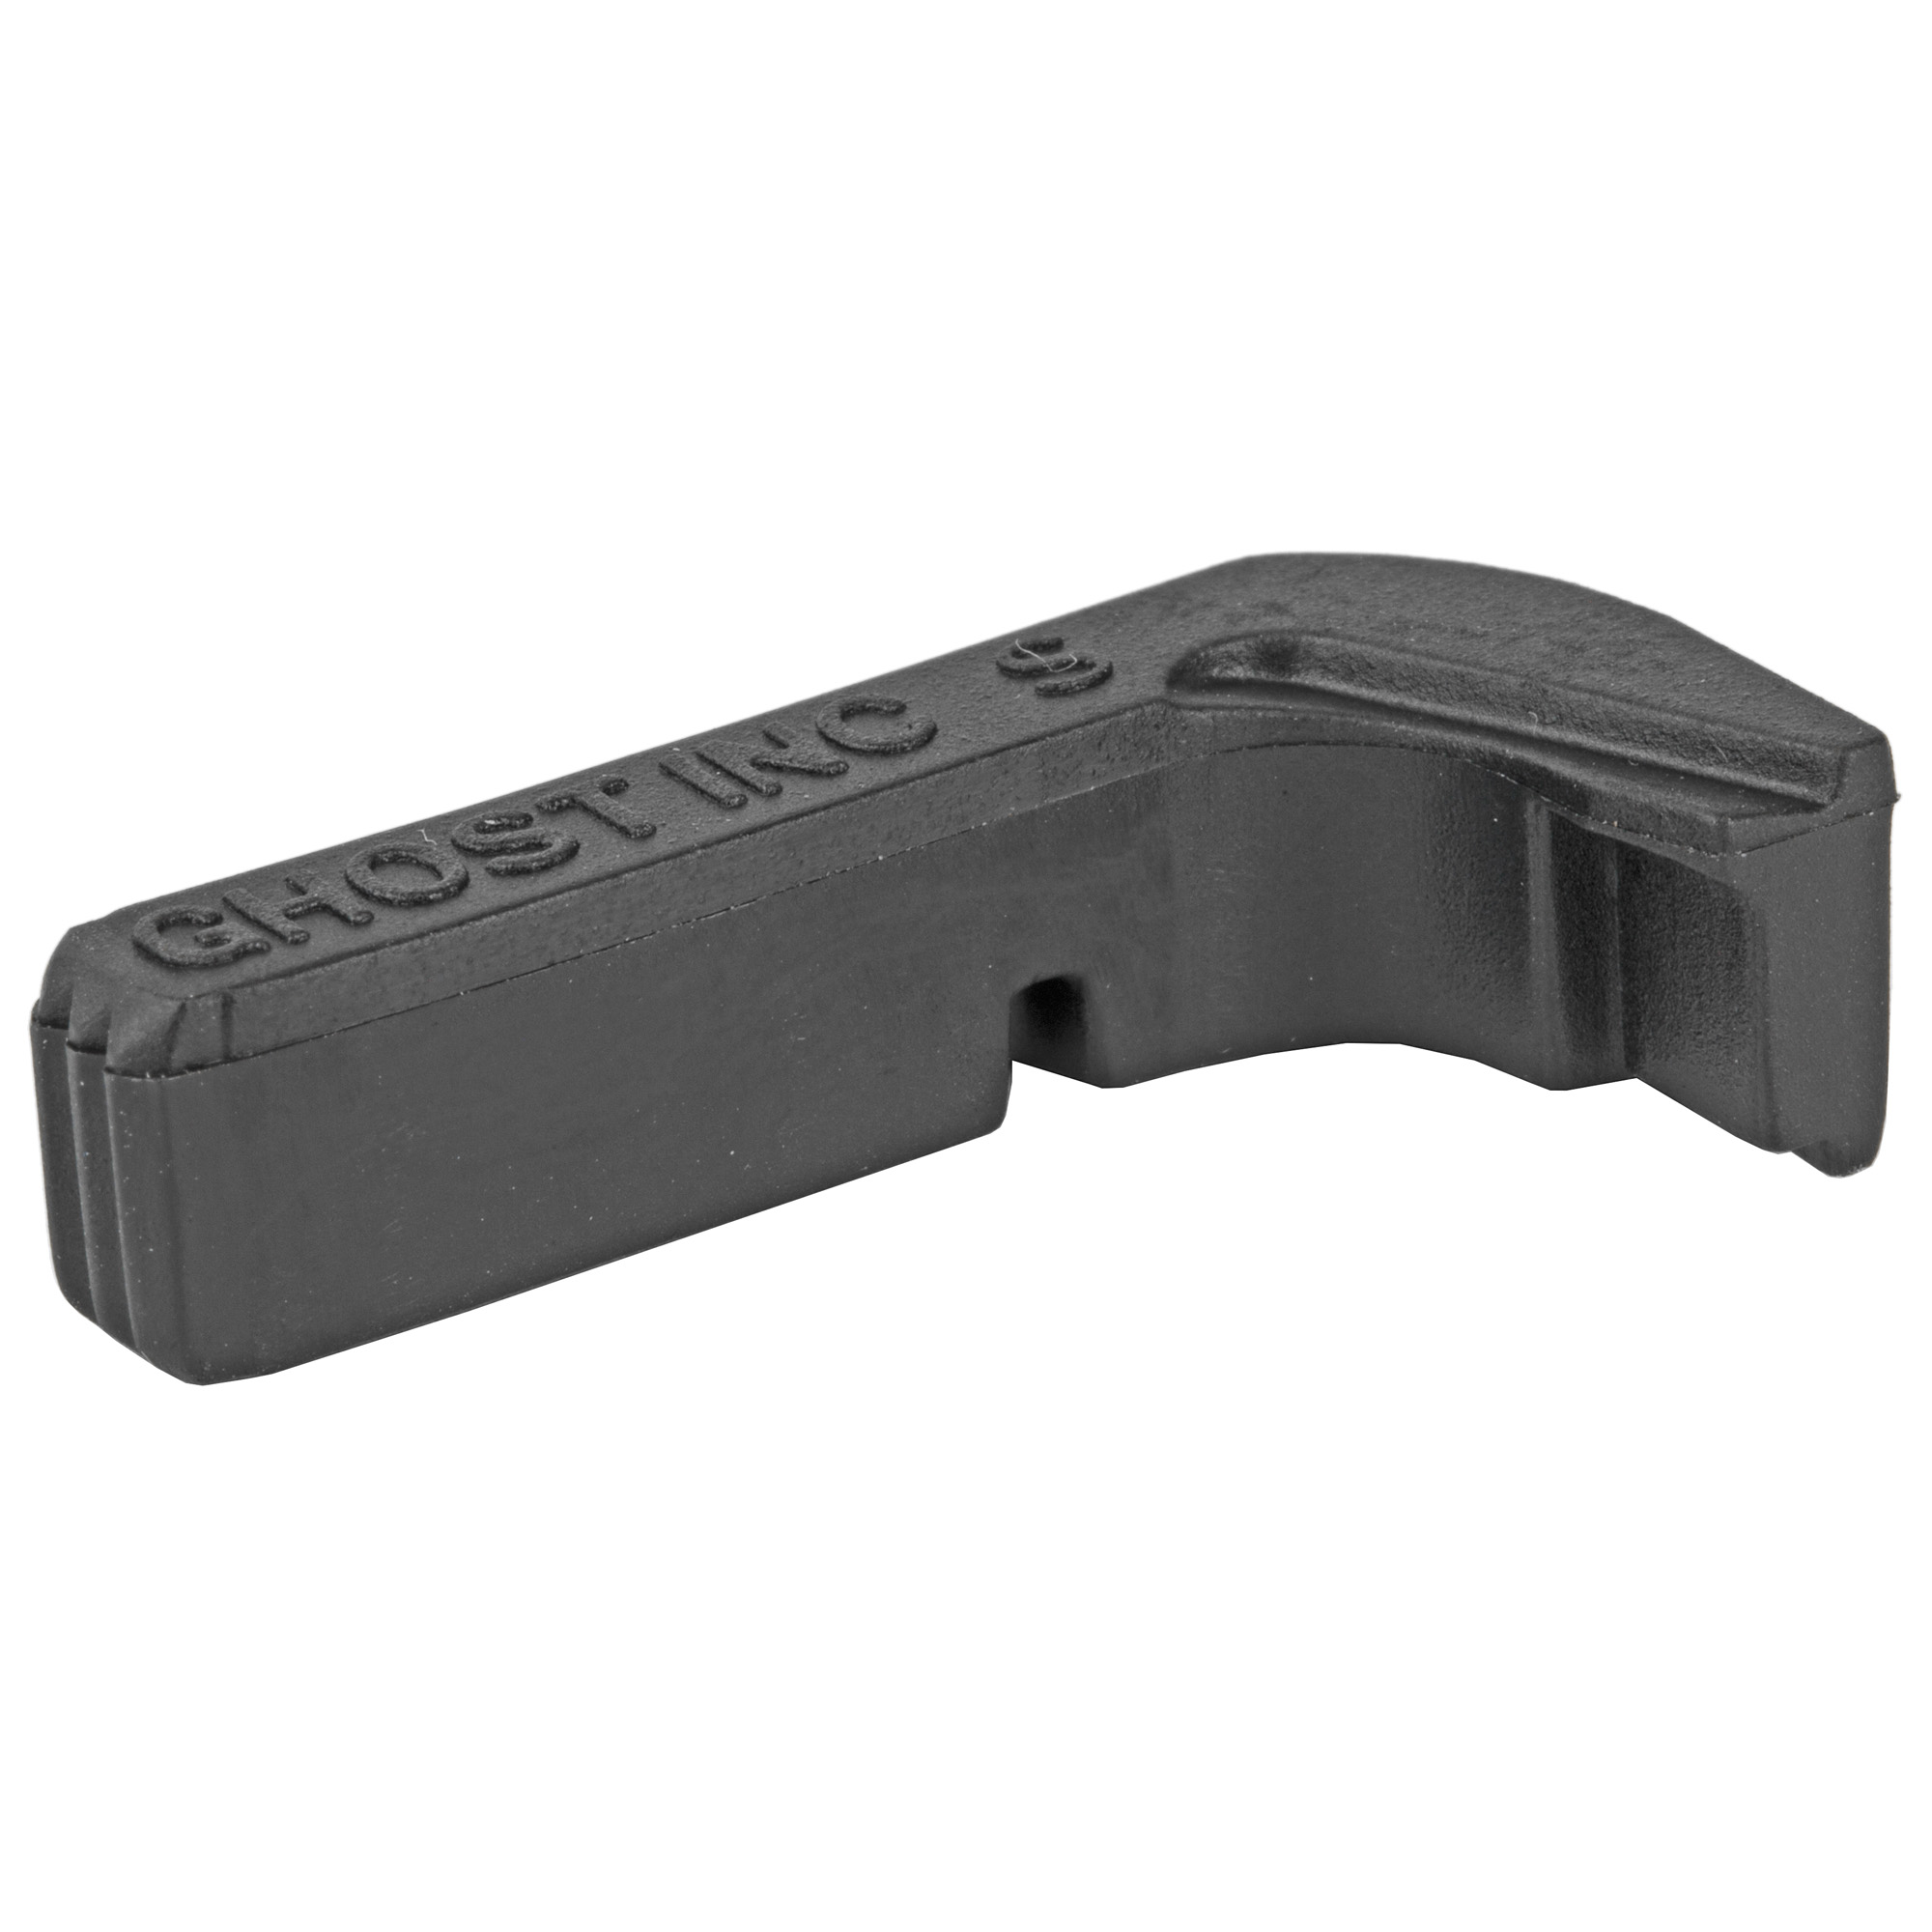 Extended to the perfect length with beveled edges to eliminate snagging on anything when drawing your pistol.